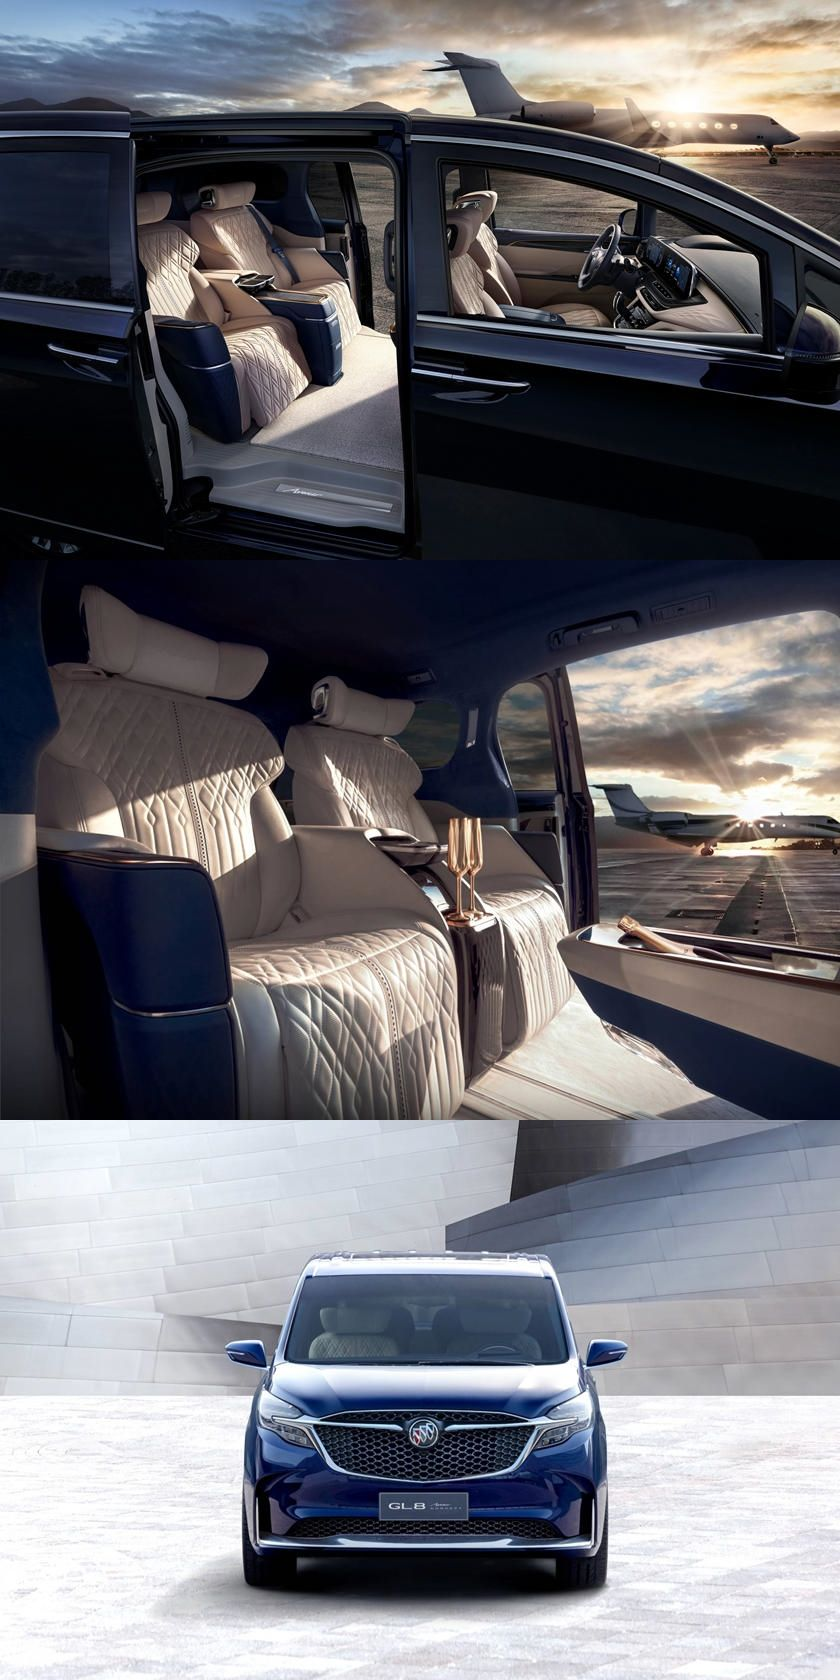 Buick Reveals The Maybach Of Minivans The Luxurious Buick Gl8 Avenir Concept Is Entering Production In 2020 Maybach Buick Mini Van